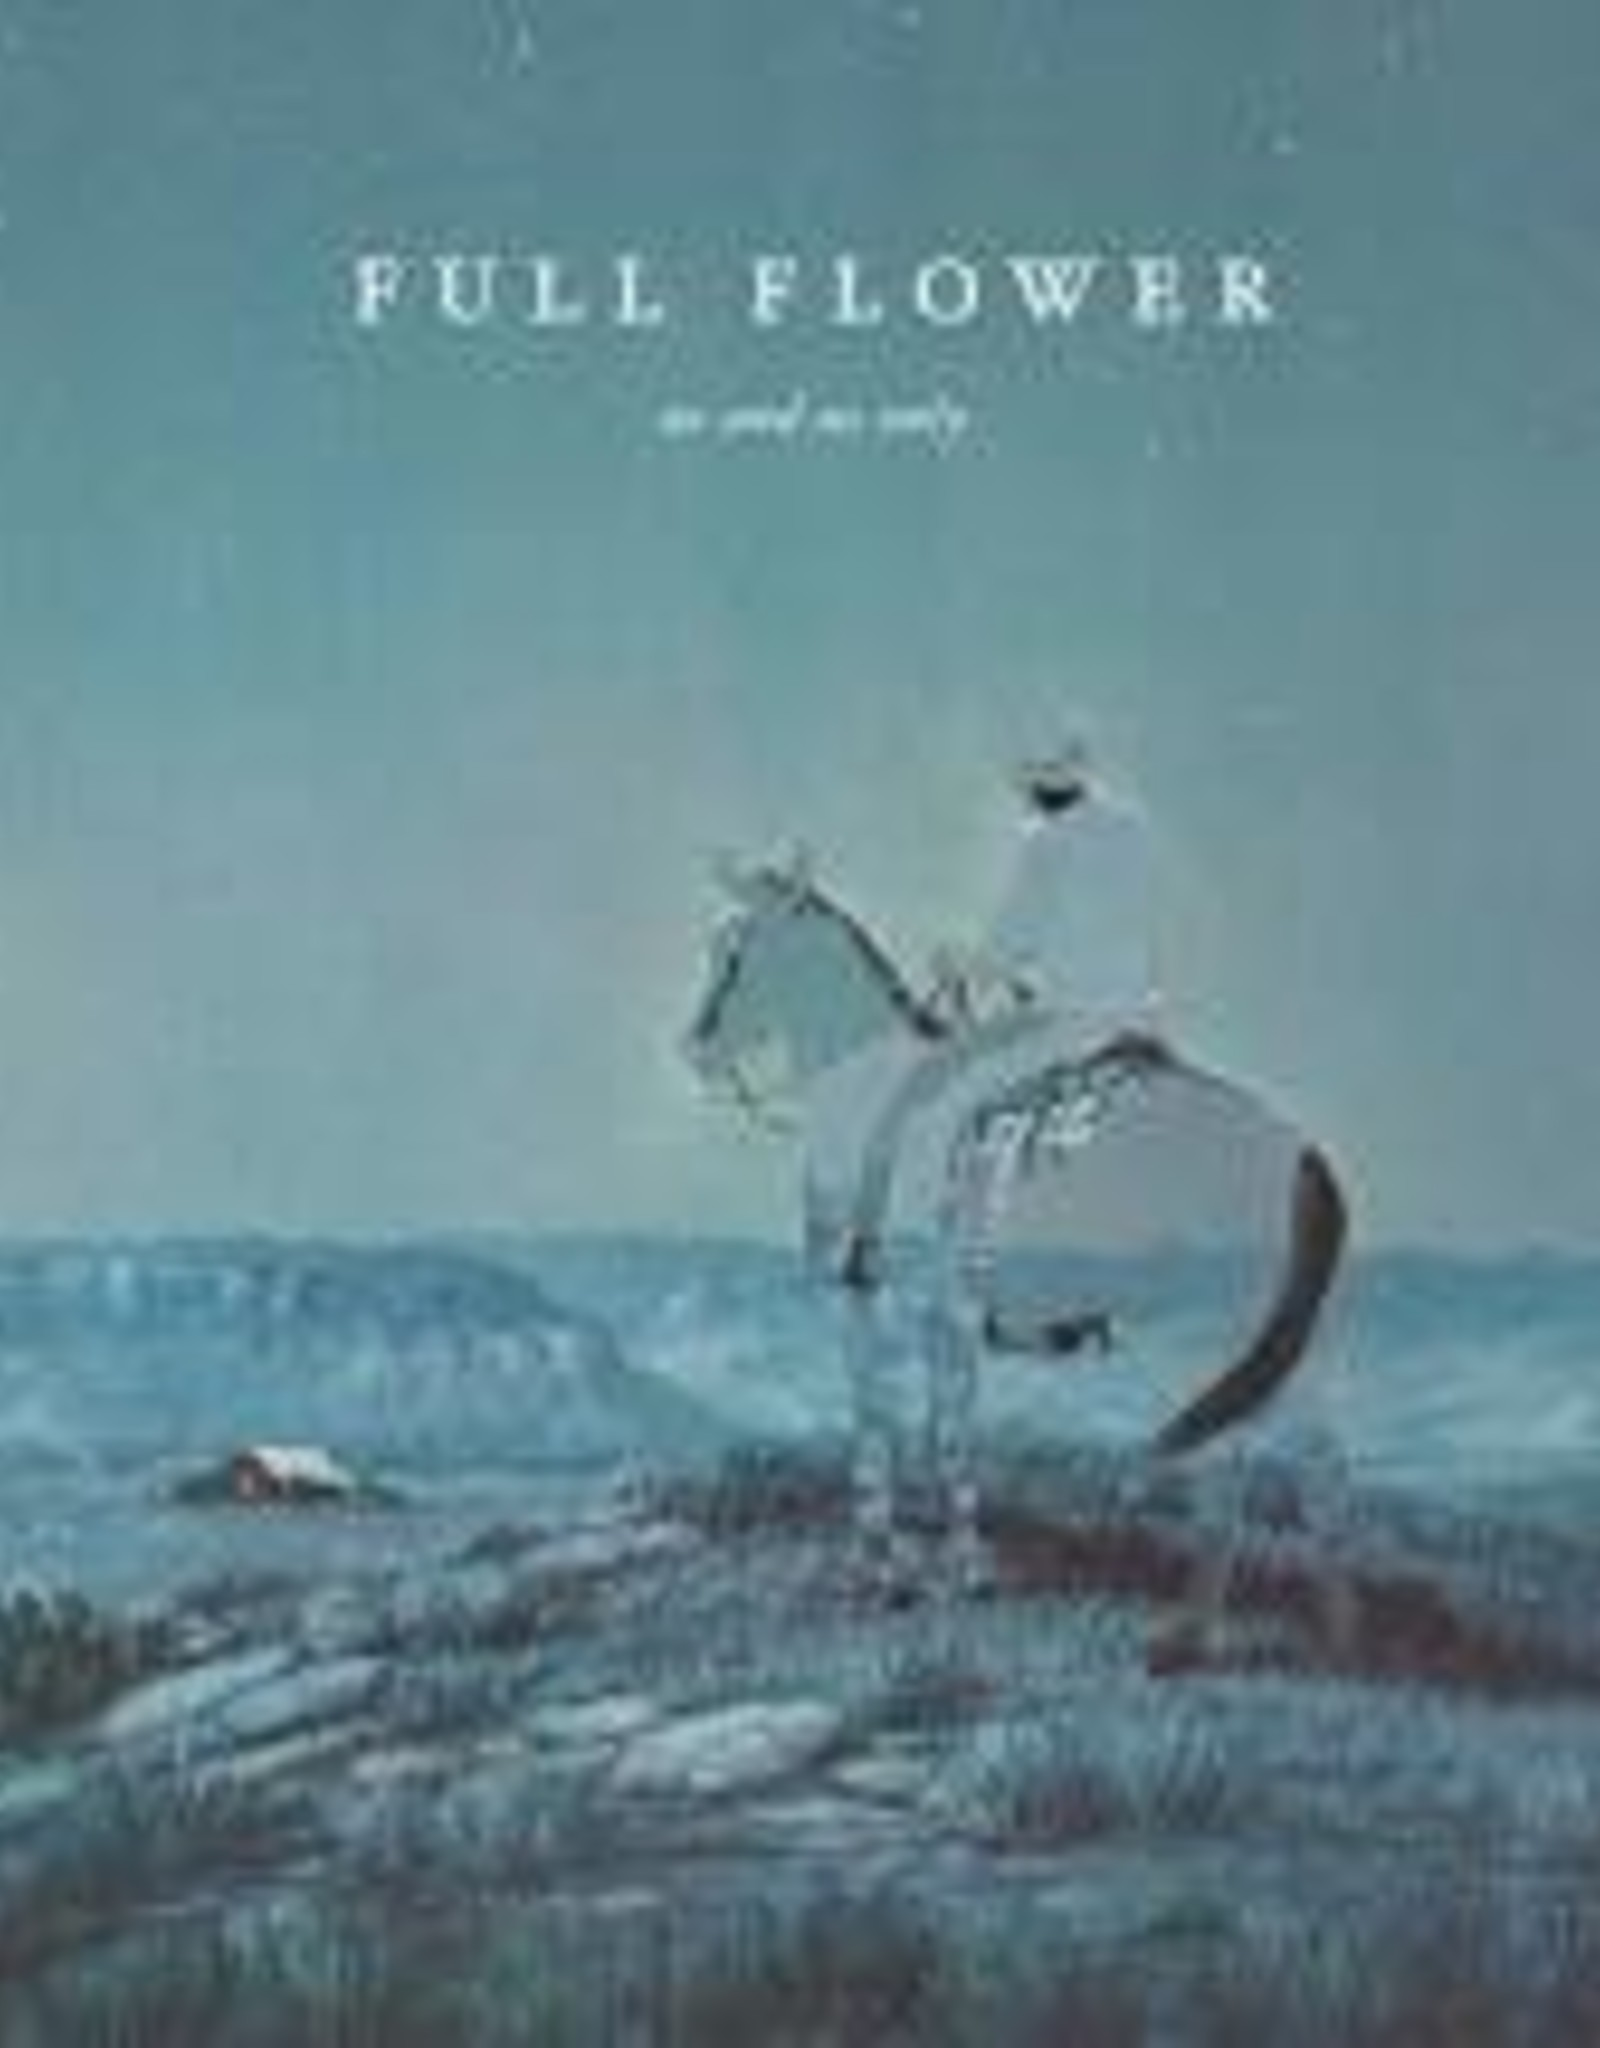 full flower - us and us only